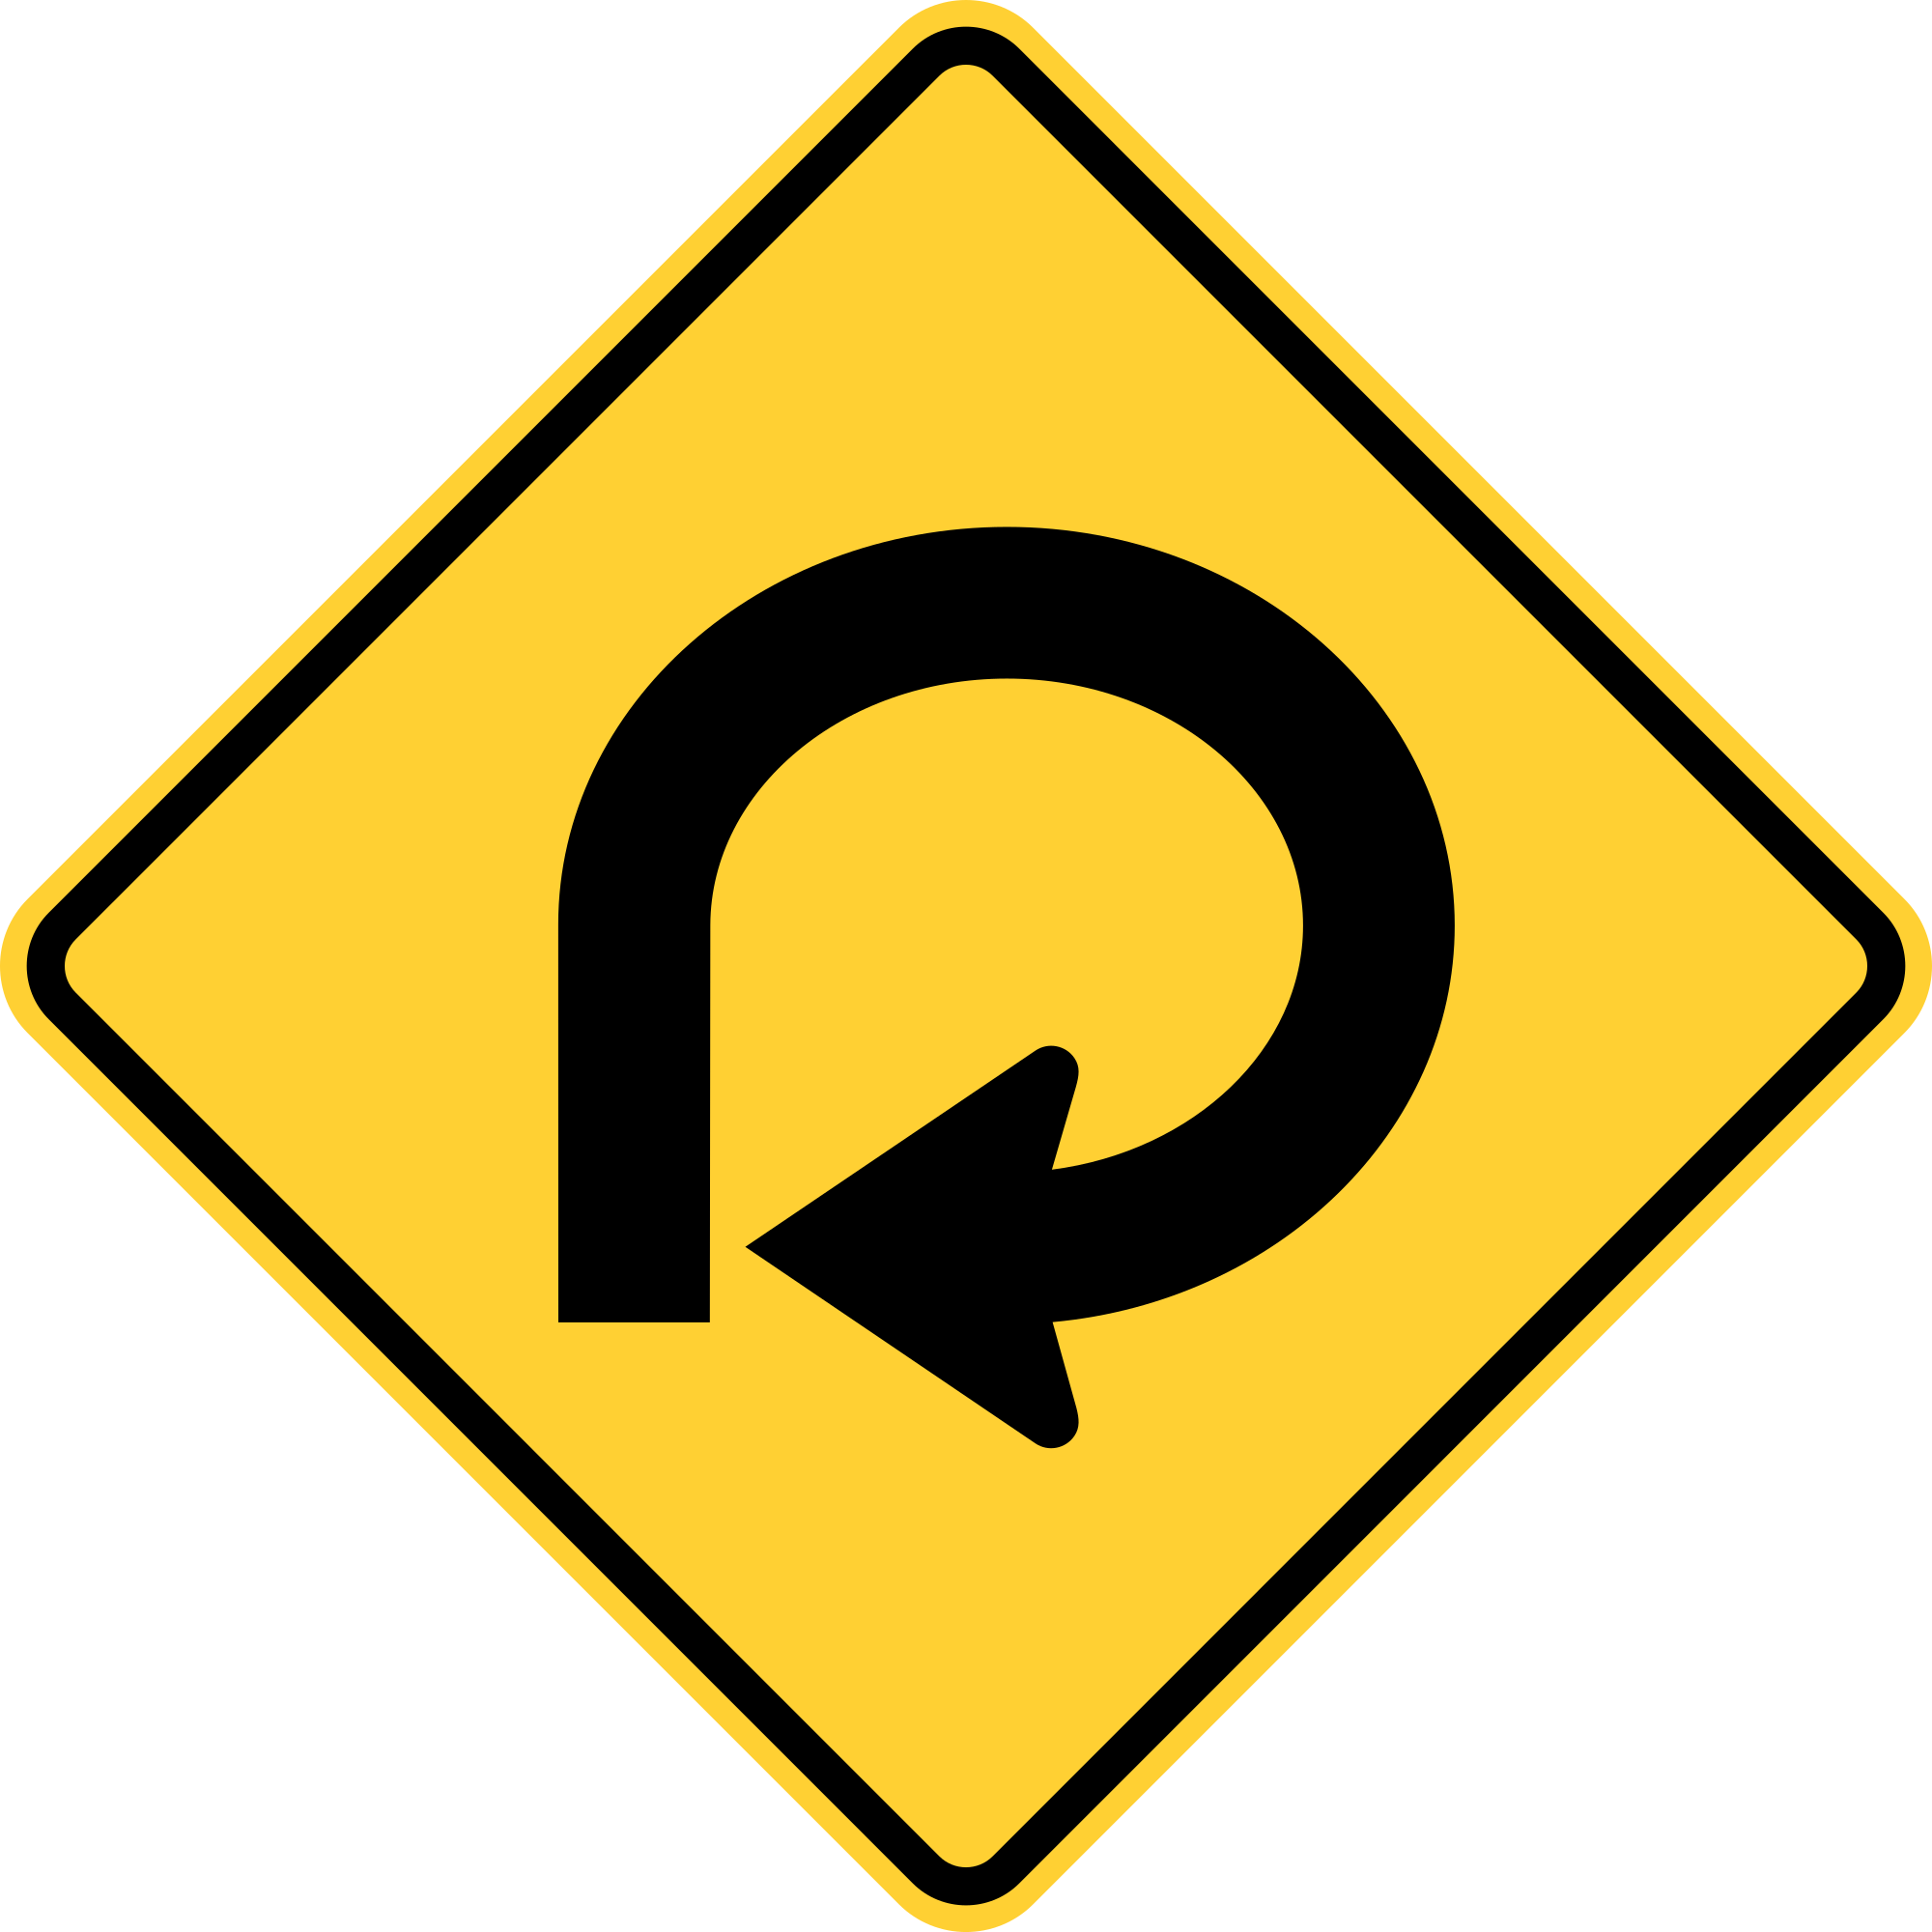 W1-15 270 Degree Loop Warning Sign